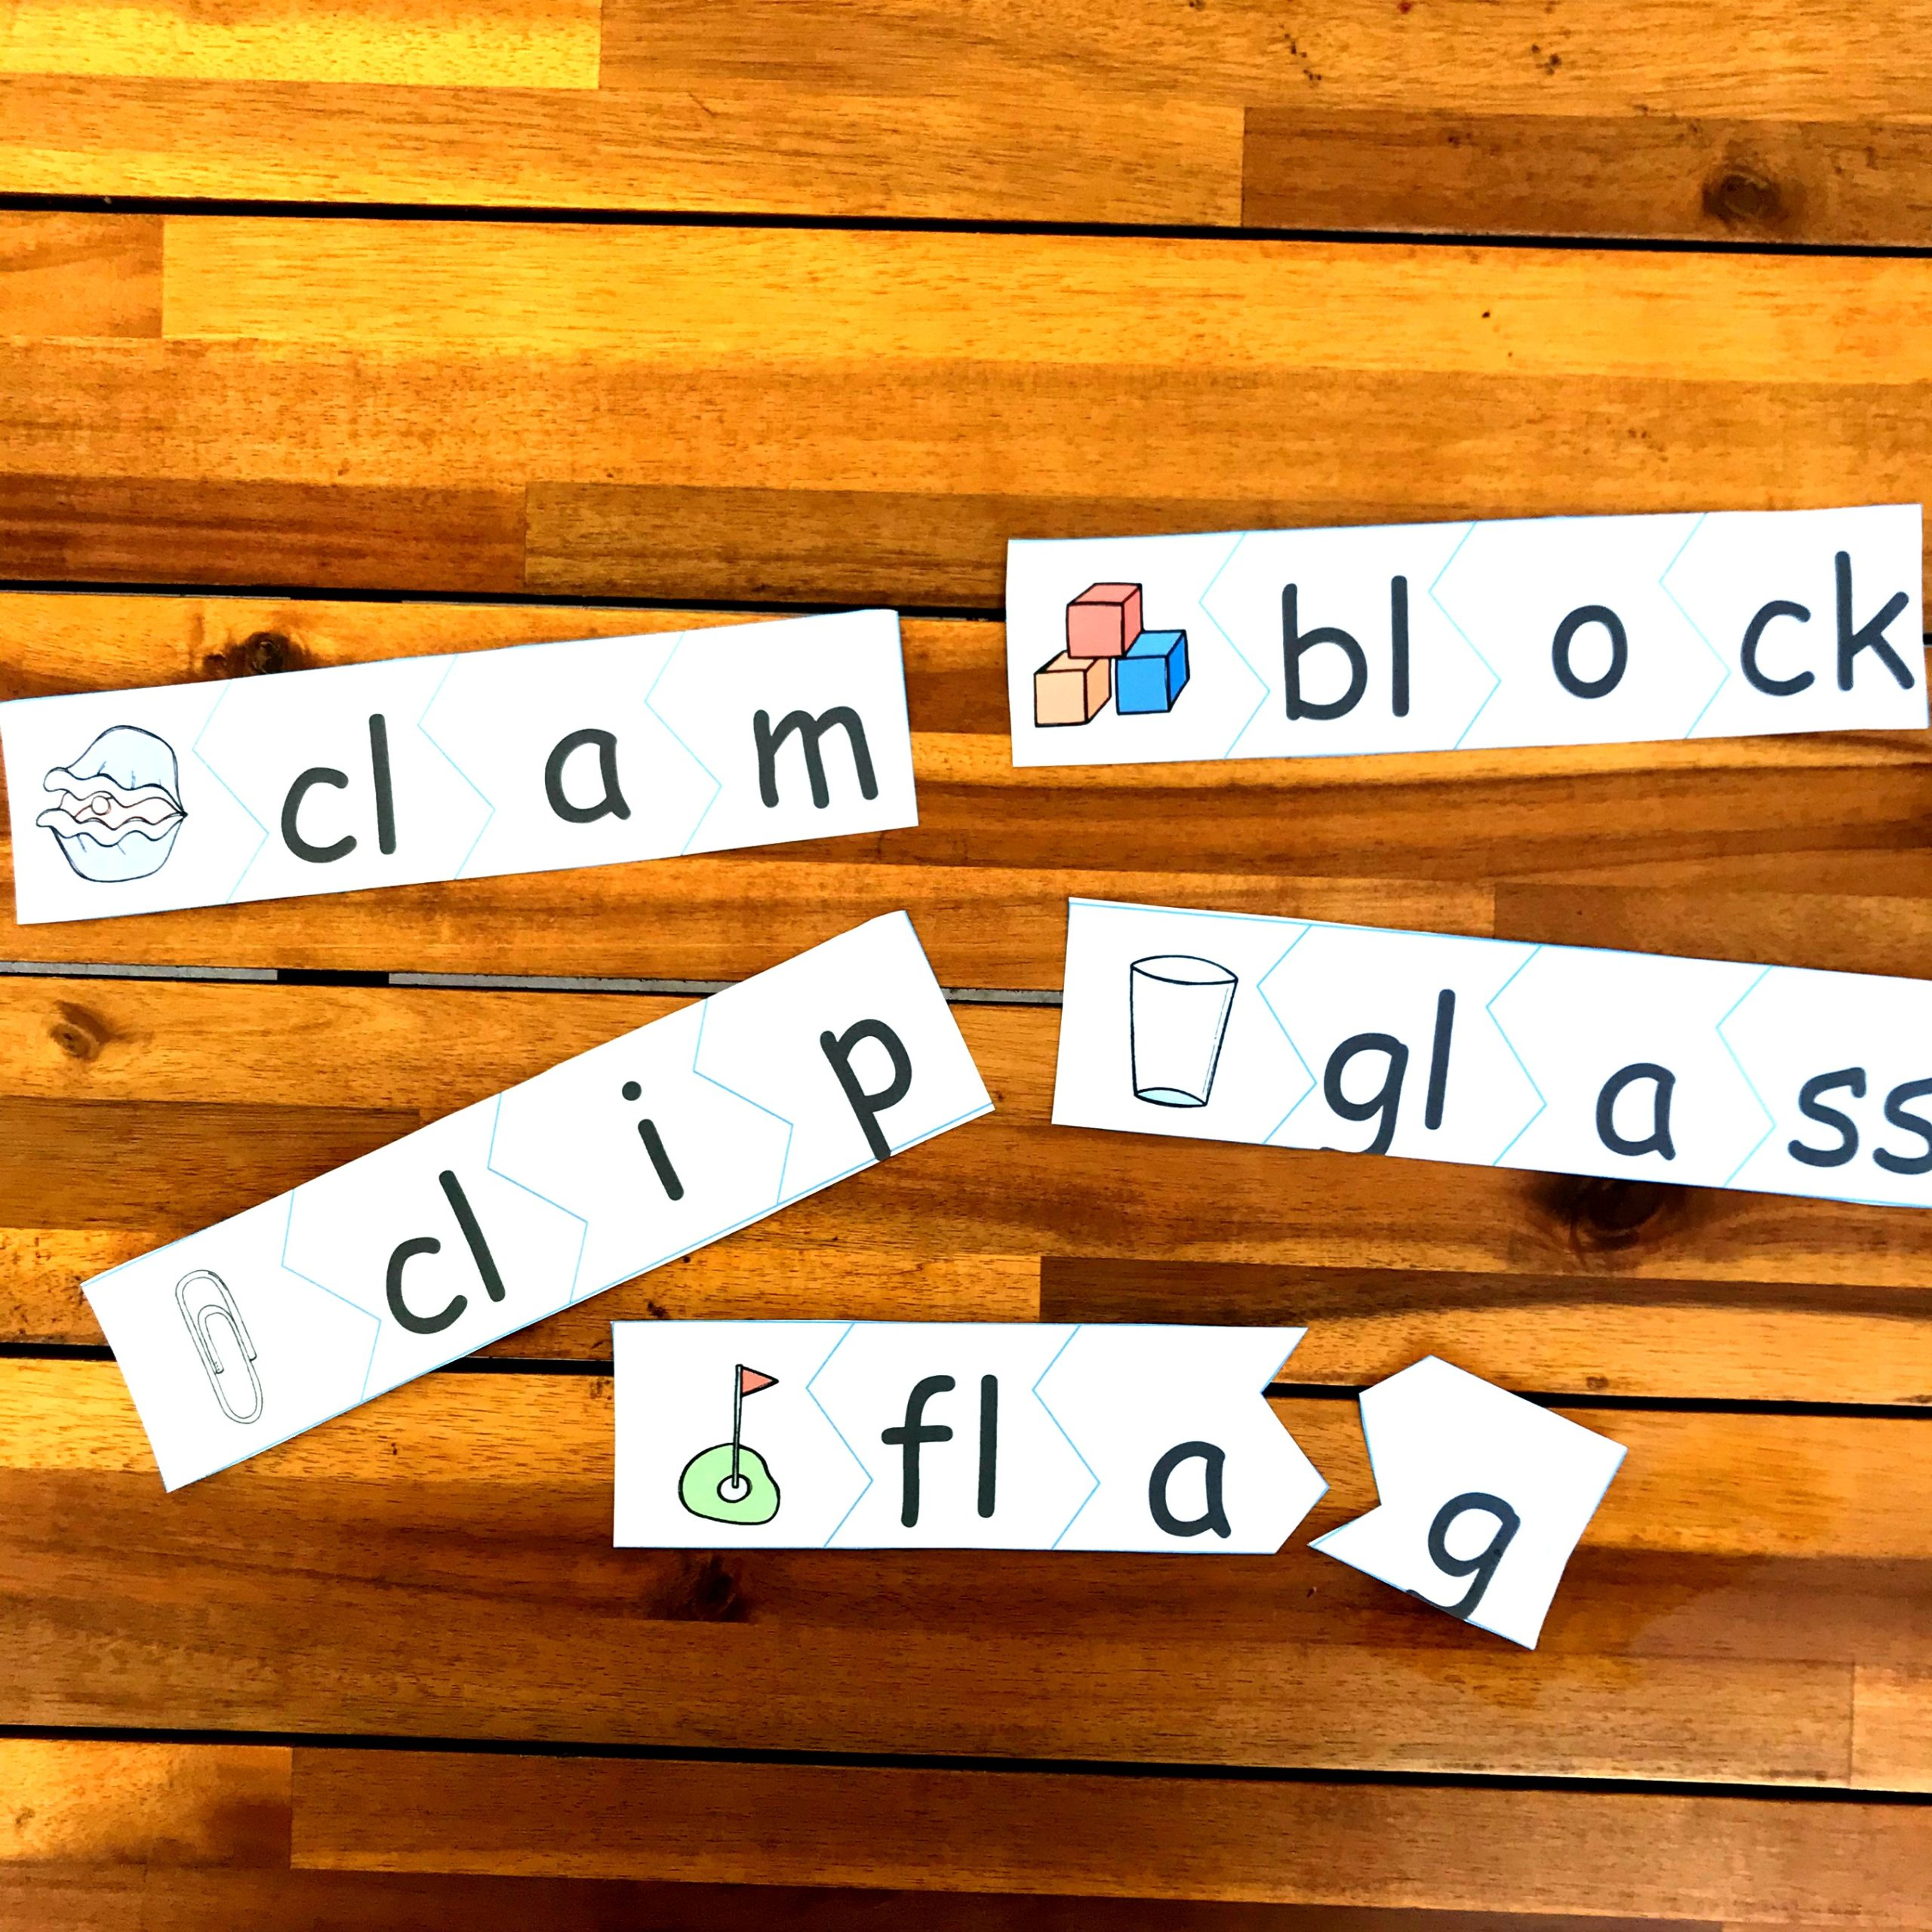 hands on activity for working on L Blend Words such as clam, clip, flag, glass, and block featuring picture clues